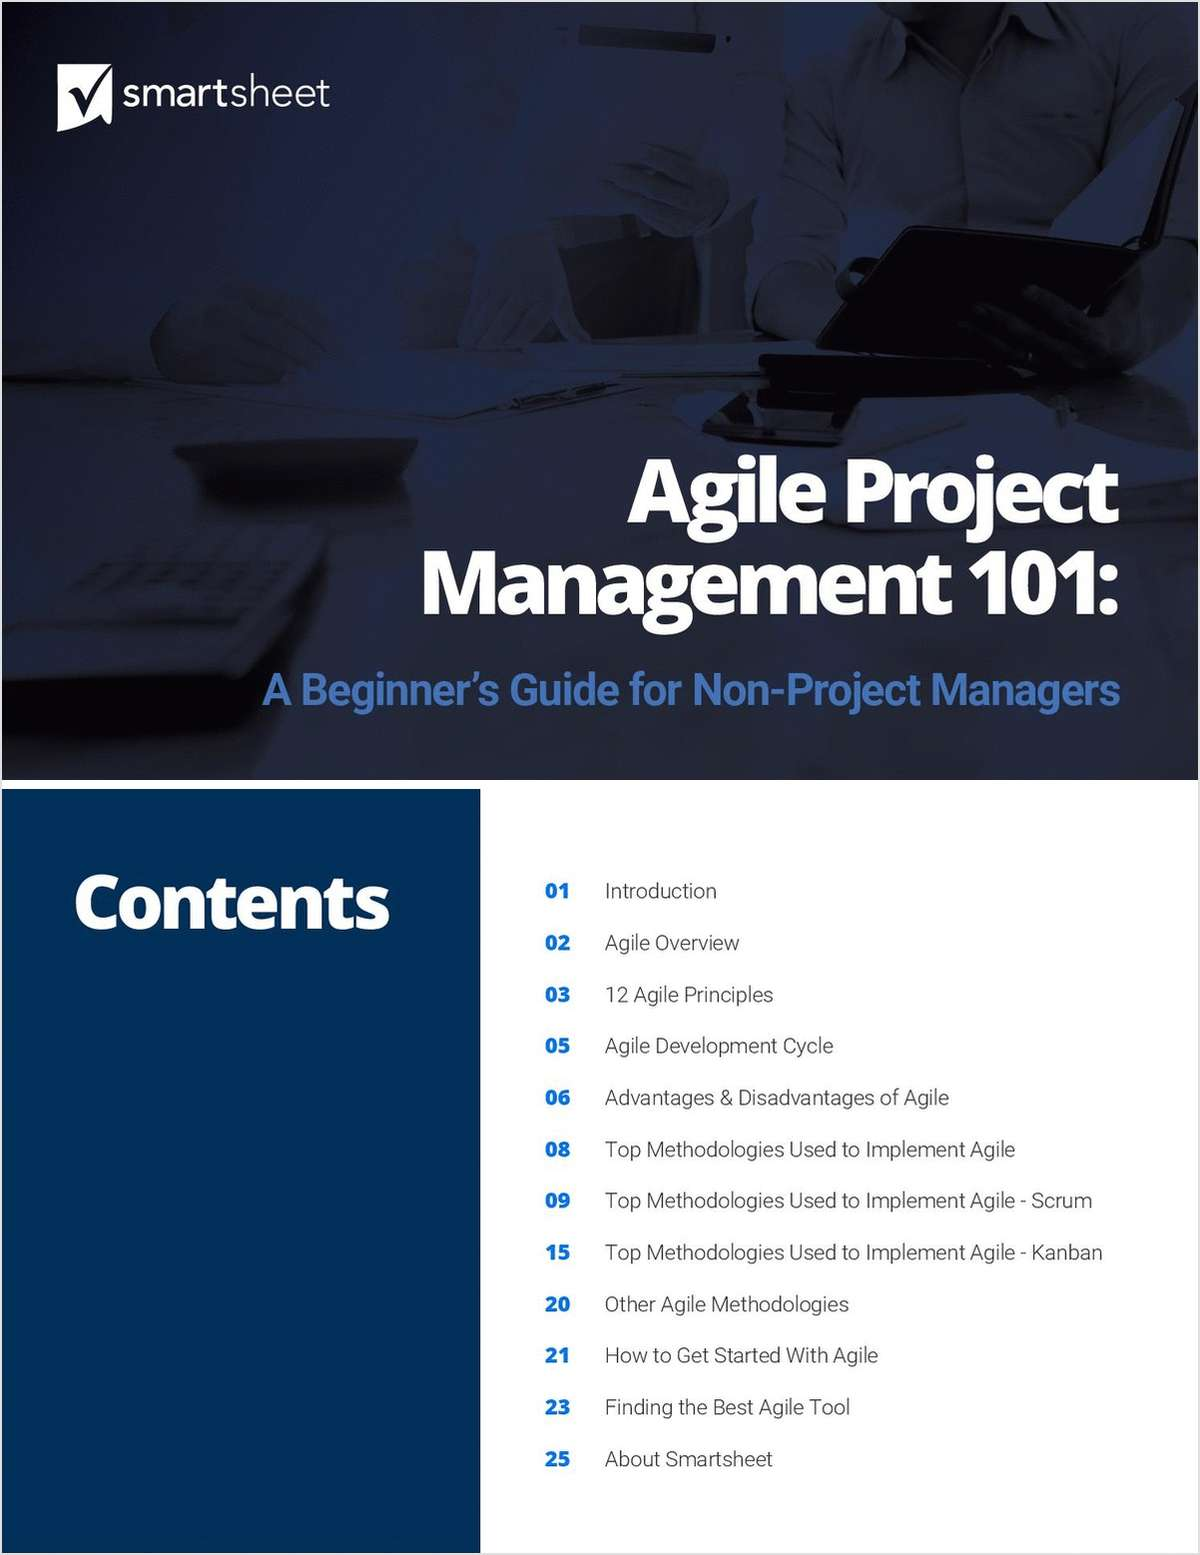 Agile Project Management 101: A Beginner's Guide